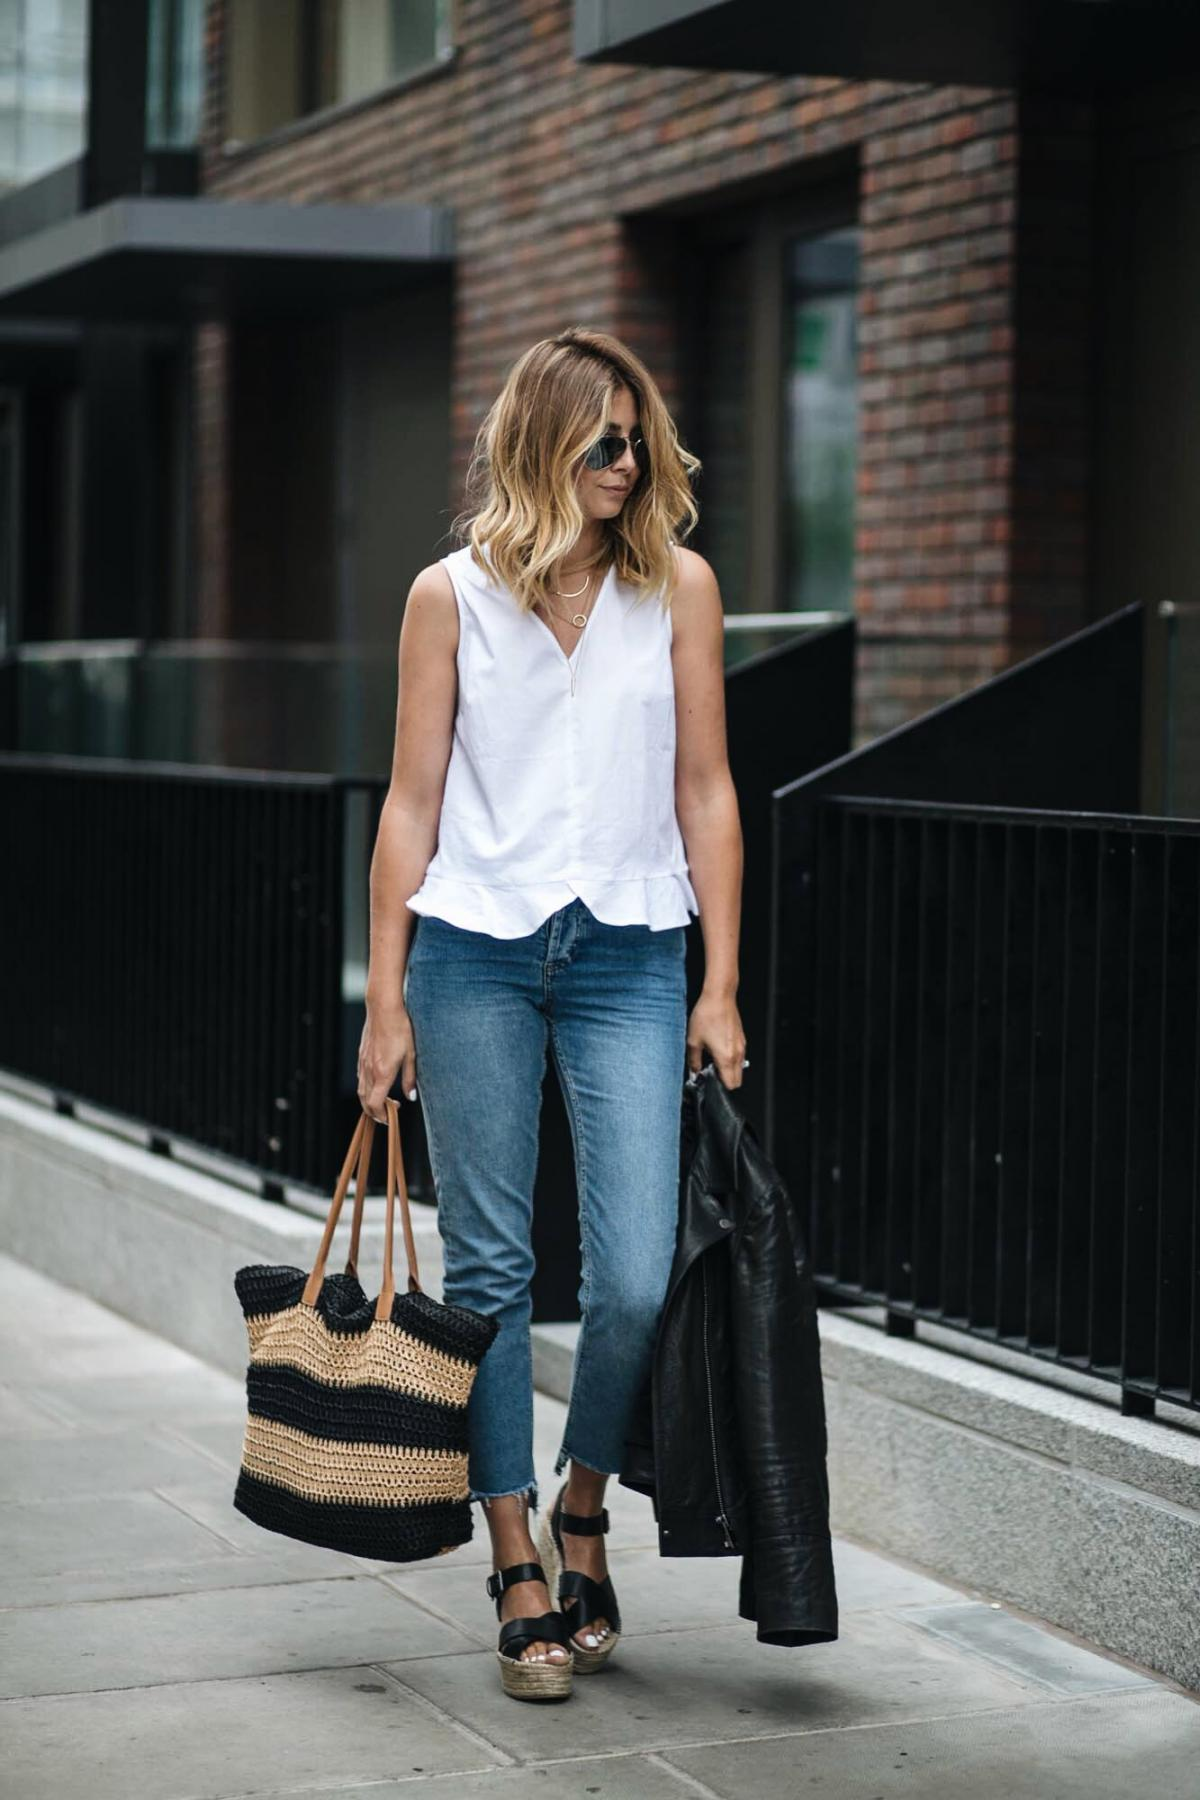 white frill hem sleeveless top, straight leg jeans with stepped hem, biker jacket, straw woven beach bag, wedge platform espadrilles sandals, summer outfit